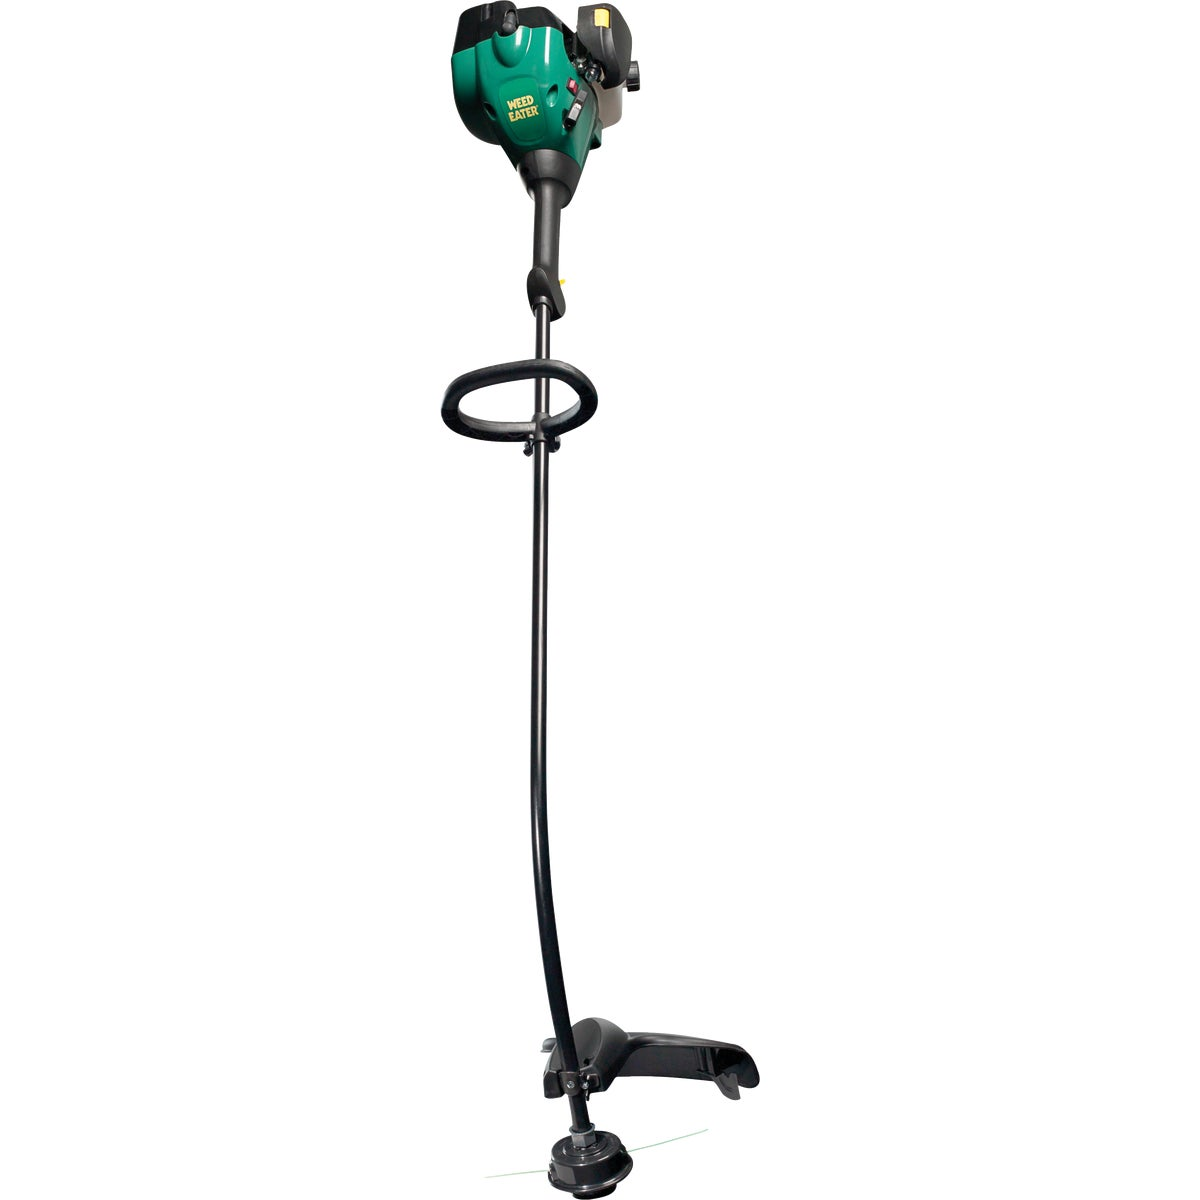 "16"" 2-CYCLE TRIMMER - 967184401 by Poulan"